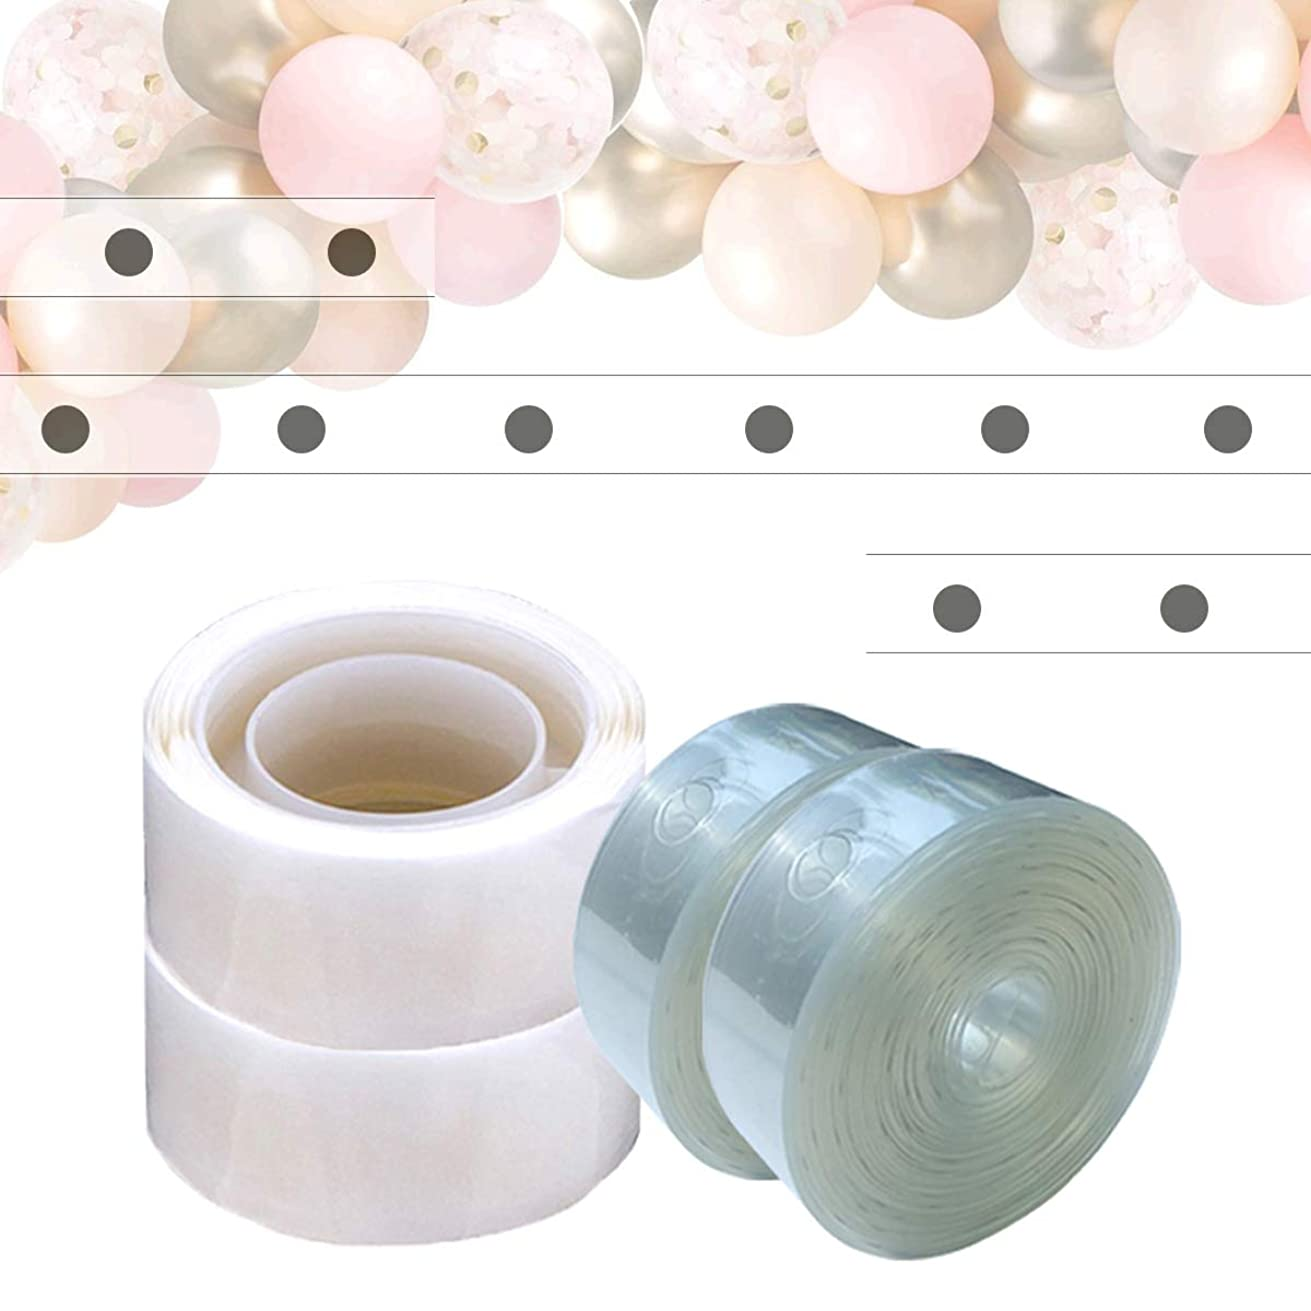 Balloon Arch Strip Kit 32 Feet Balloon Garland Tape / 200 Dots of Glue Easy to Make Balloon Decorations for Birthday Party Wedding and Baby Shower (Single Hole)